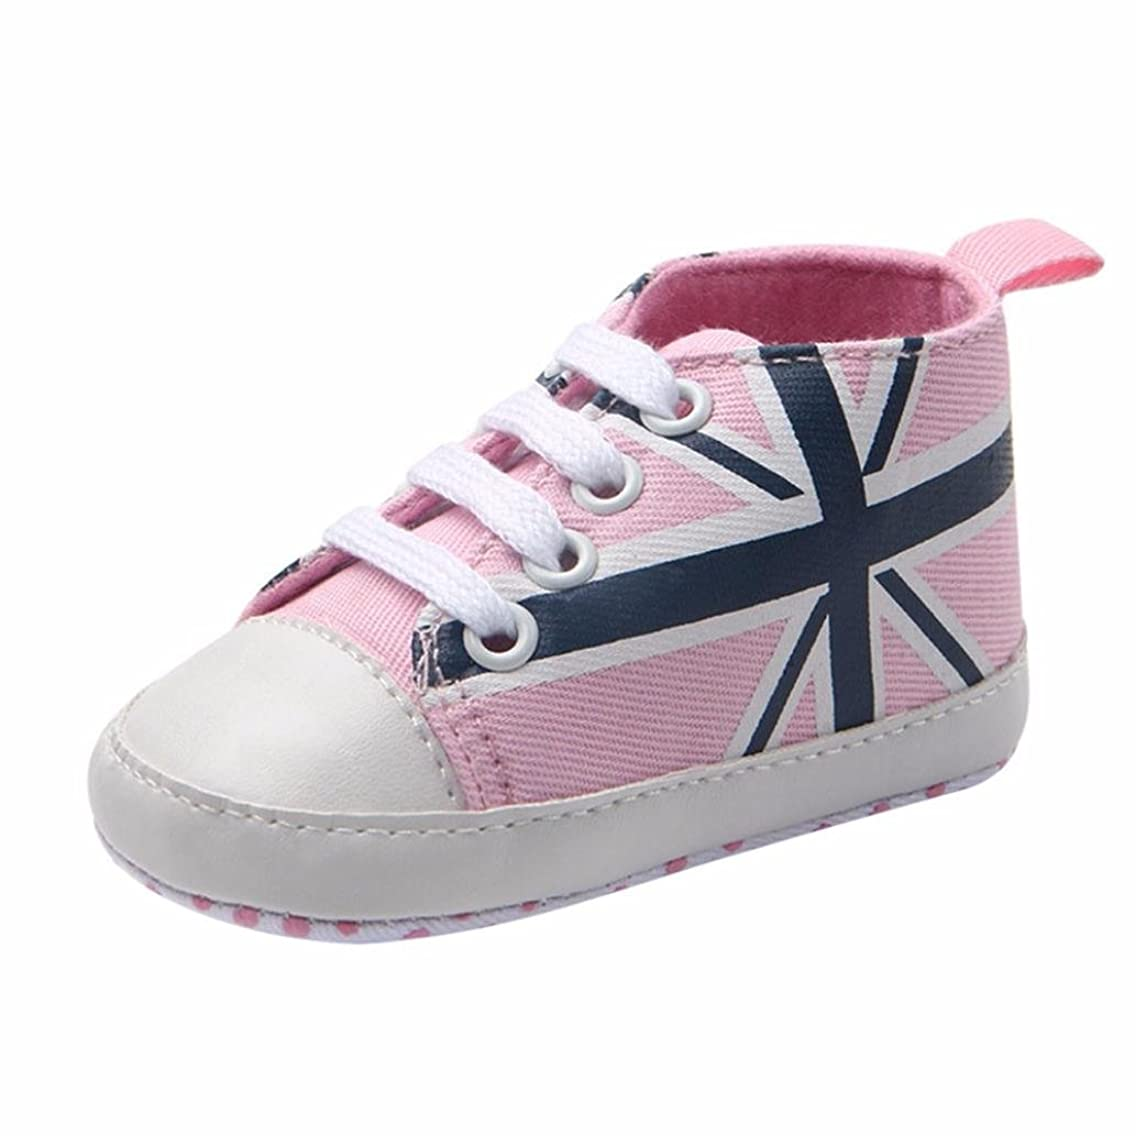 Witspace Newborn Baby Union Jack Flag Print Canvas Shoes Infant Anti-Slip Sneakers